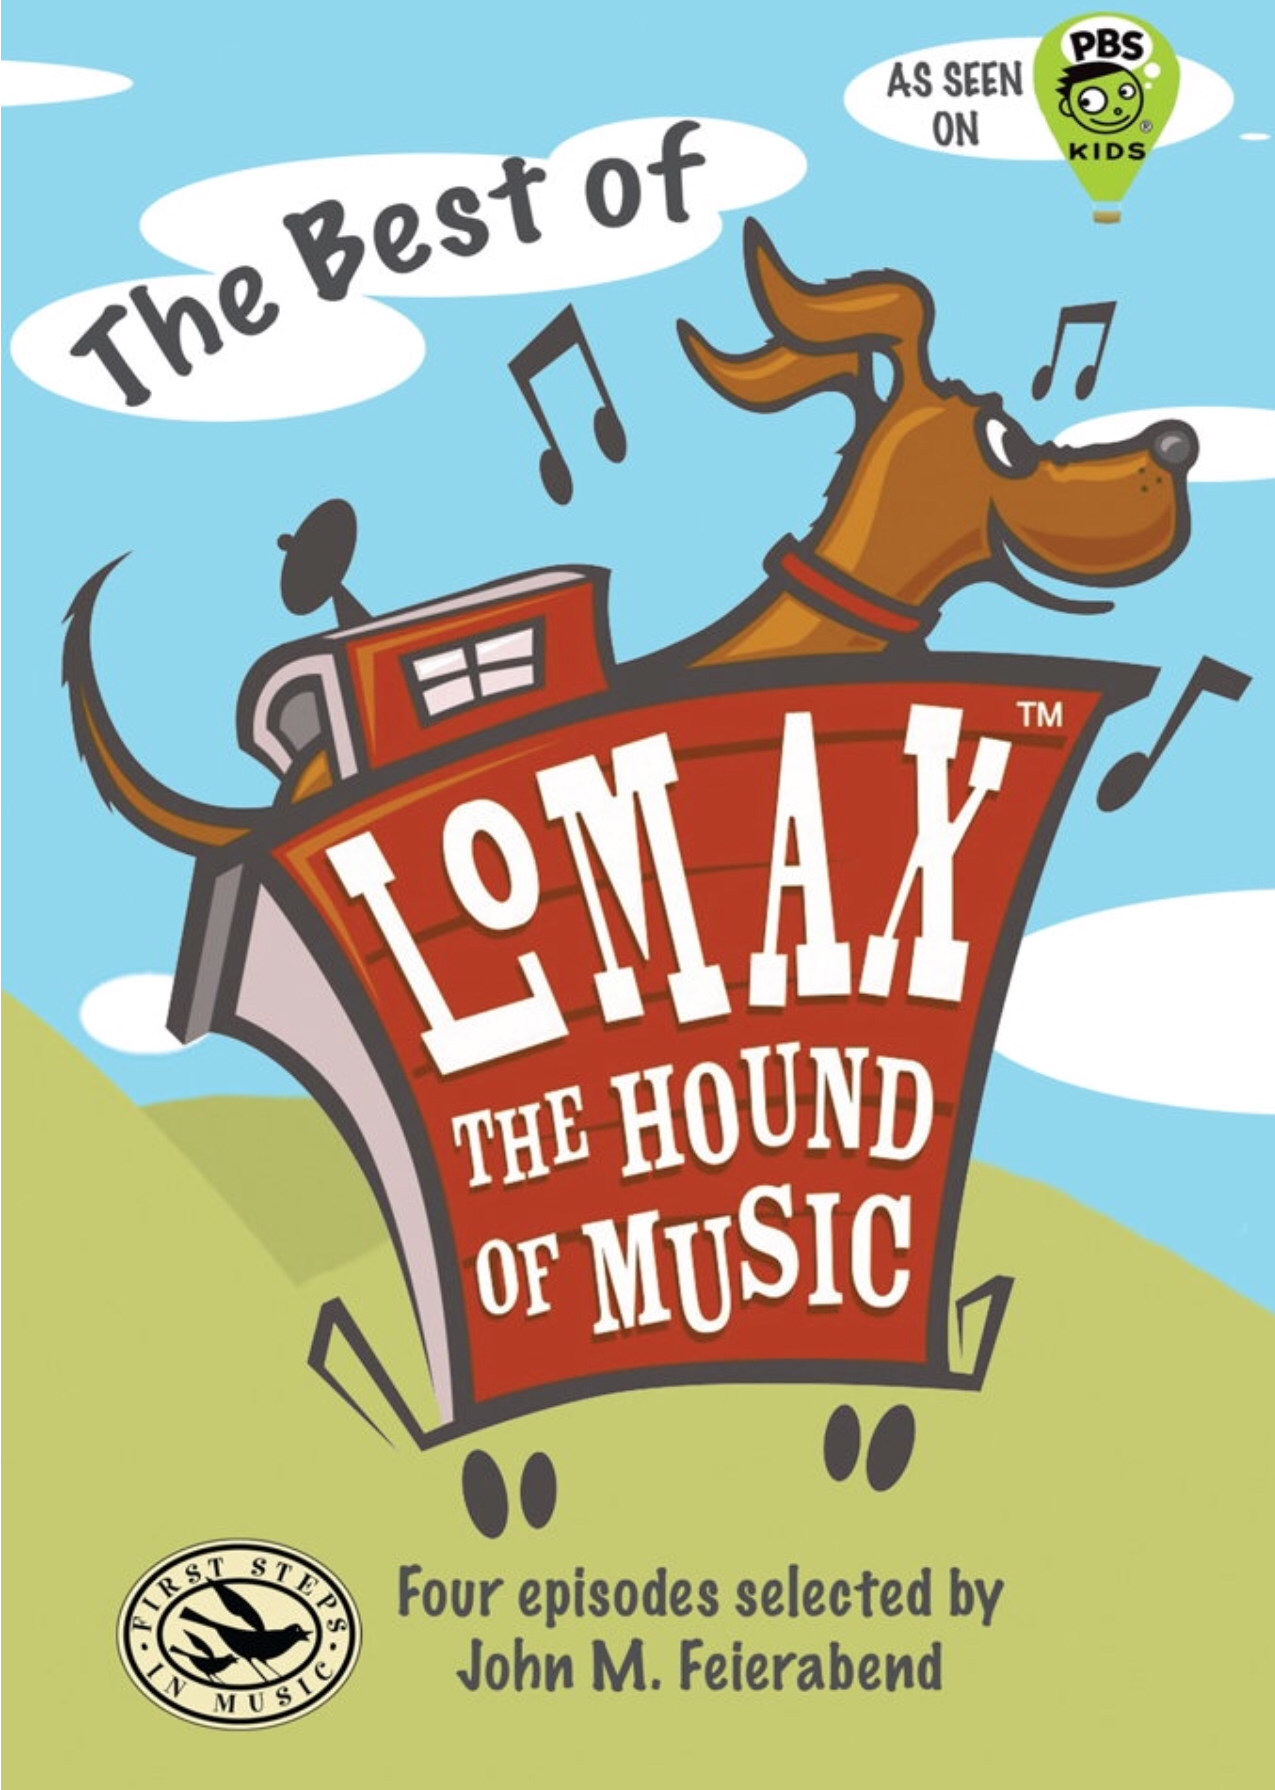 Best Of Lomax The Hound (DVD) by John Feierabend